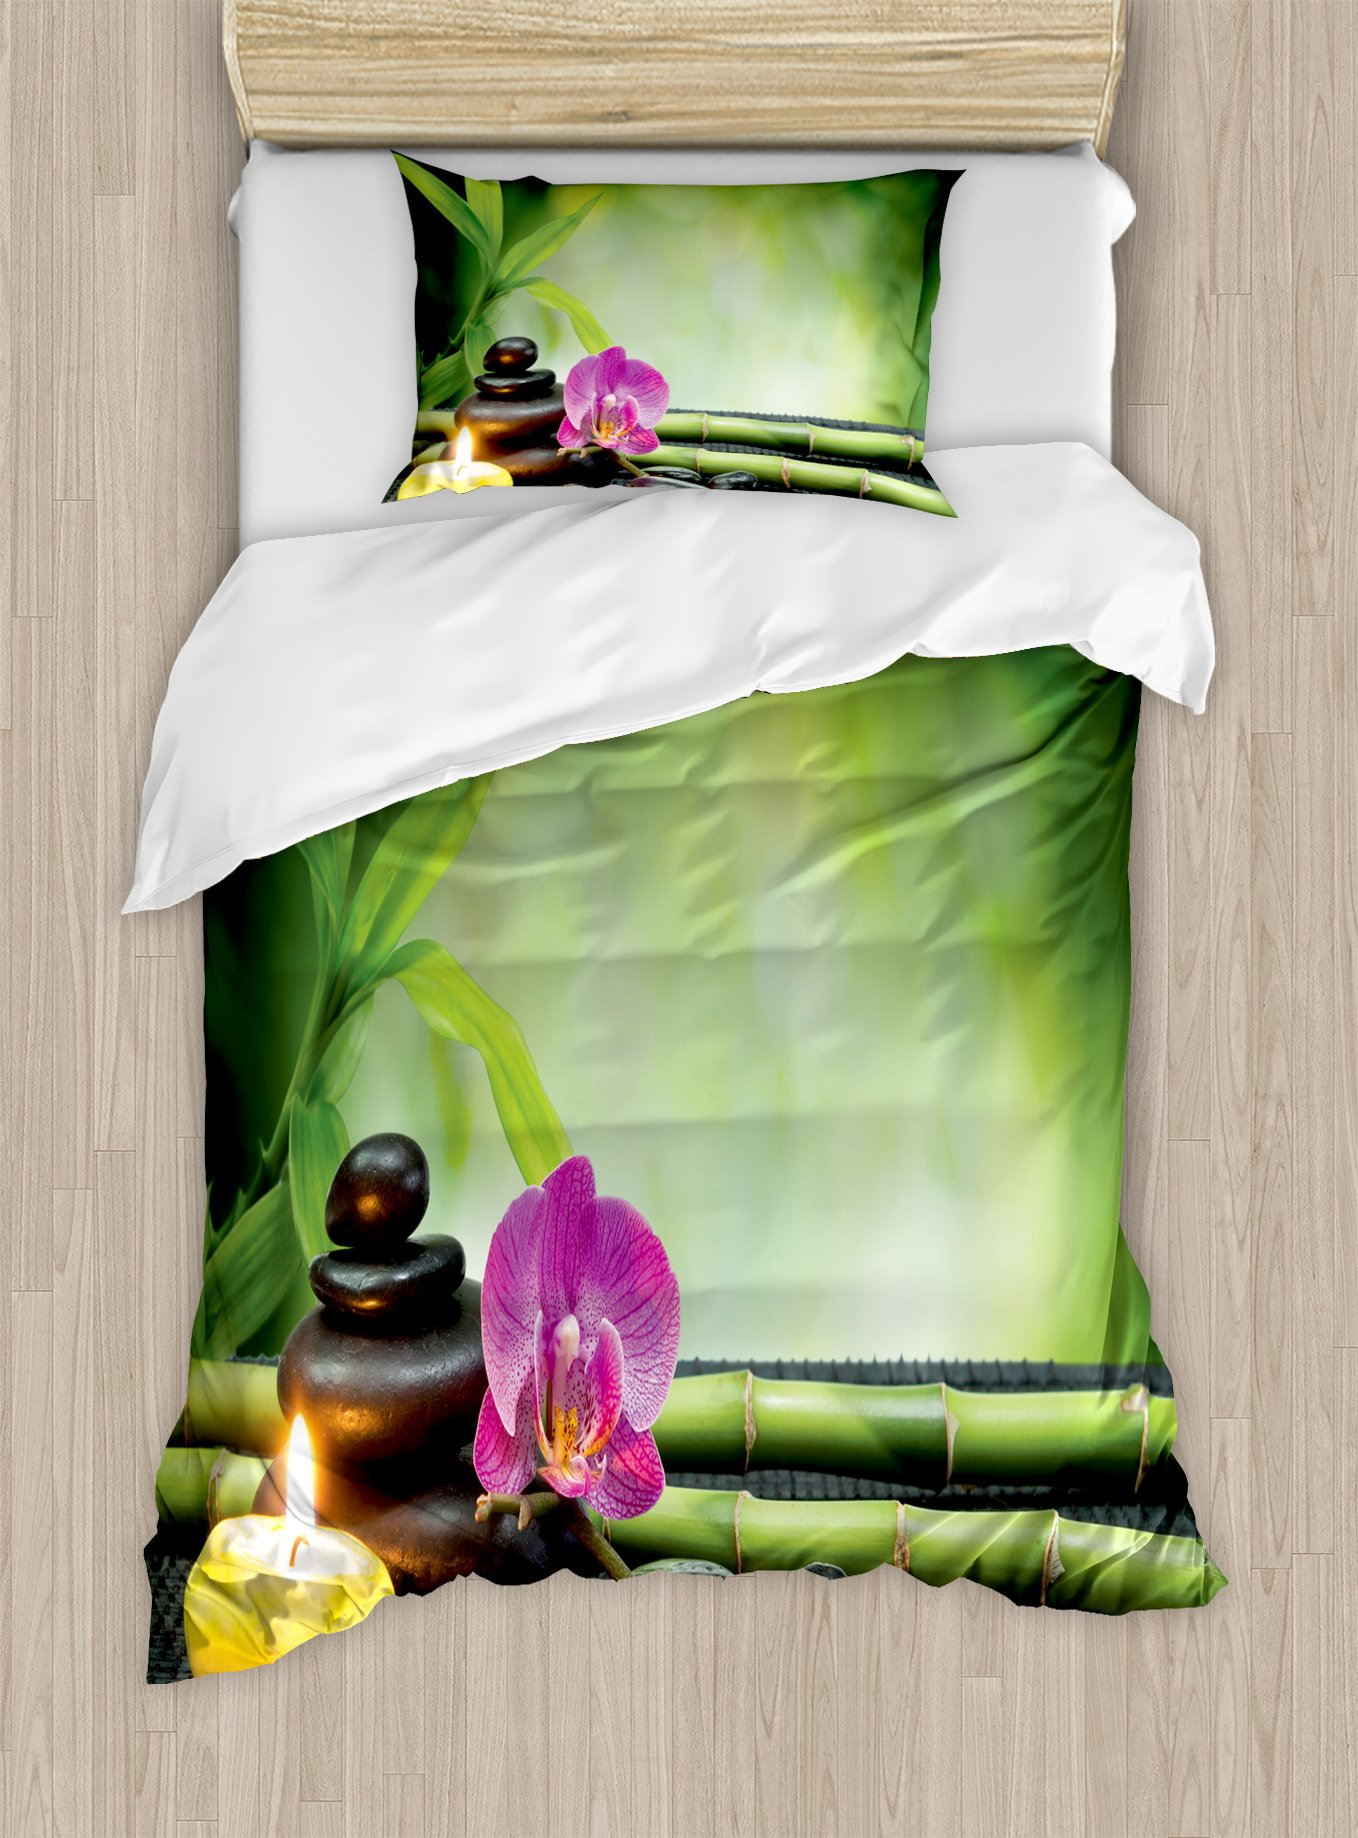 Ambesonne Spa Duvet Cover Set Twin Size, Orchid Bamboo Stems Chakra Stones Japanese Alternative with Feng Shui Elements, Decorative 2 Piece Bedding Set with 1 Pillow Sham, Apple Green Fuchsia